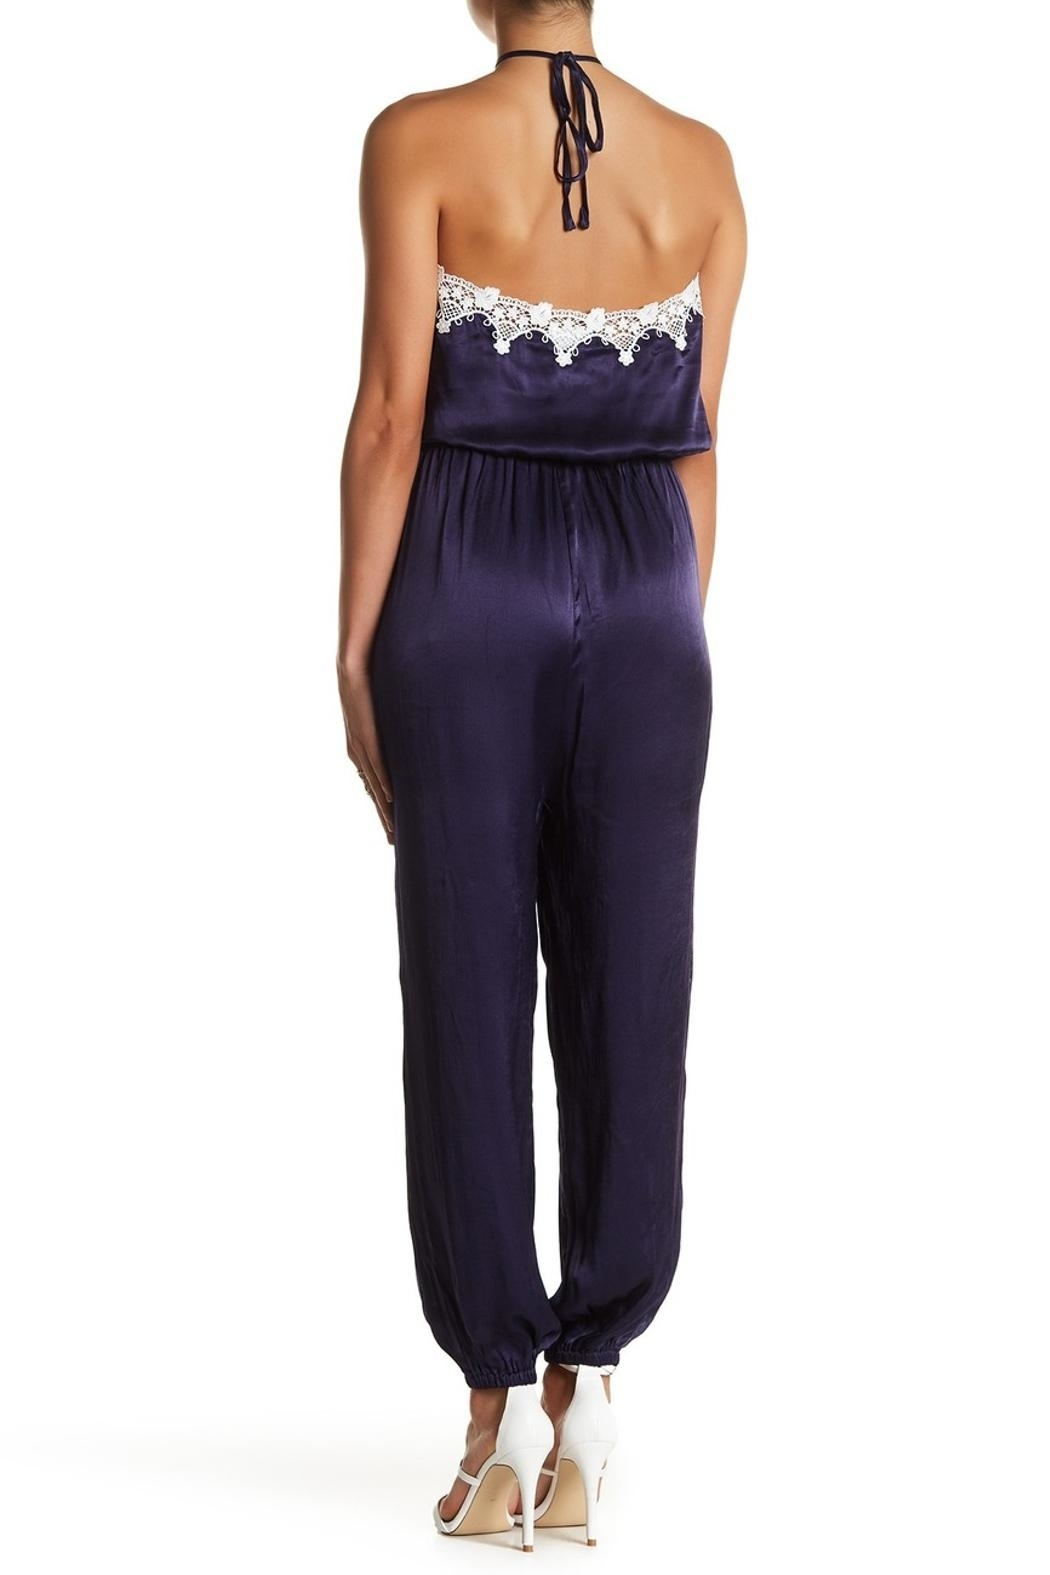 Sugarlips Satin-n-Lace Jumpsuit - Front Full Image